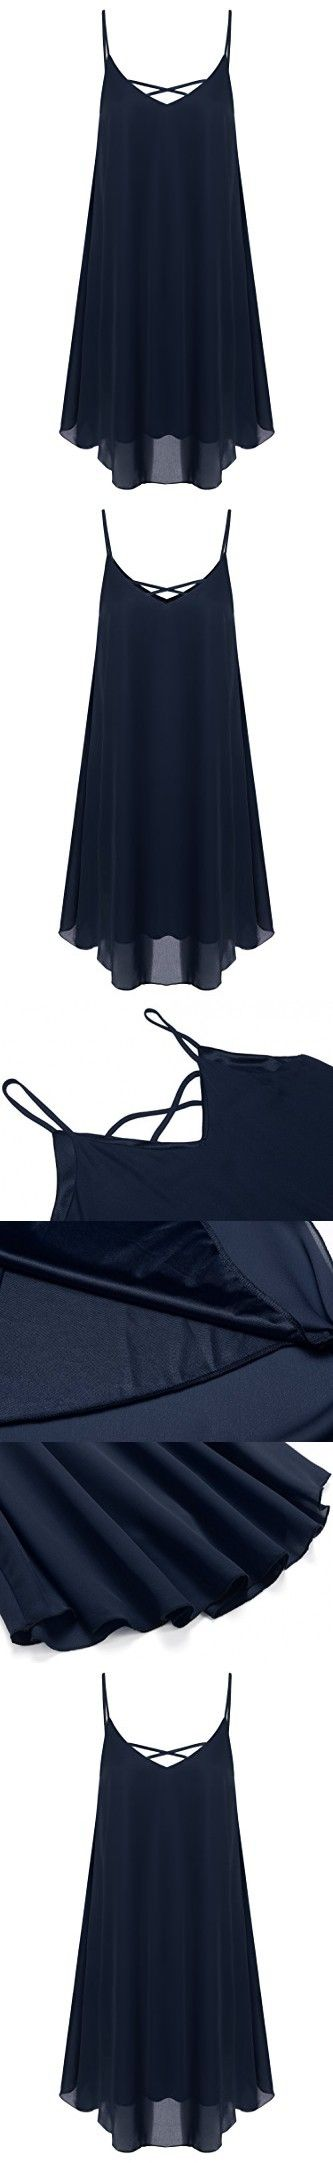 Zeagoo Women's Summer Spaghetti Strap Sundress Sleeveless Beach Dress Navy Blue X-Large